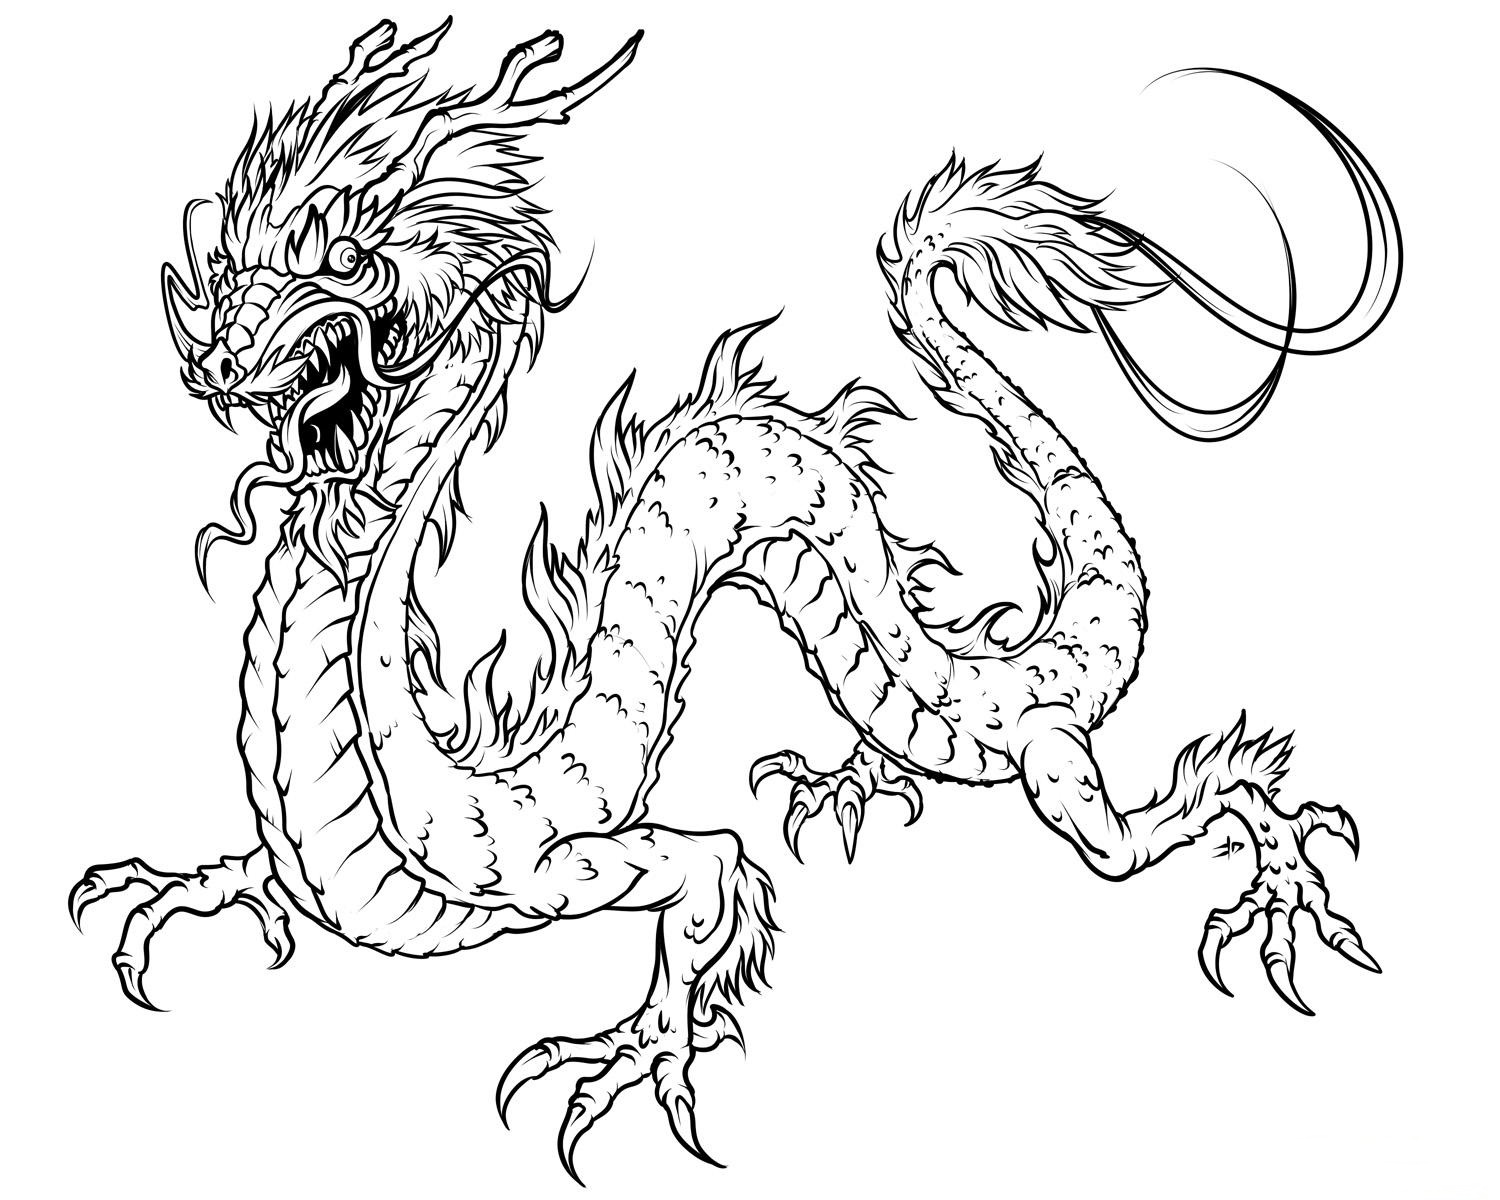 dragon coloring pages for kids - Coloring Pics For Kids